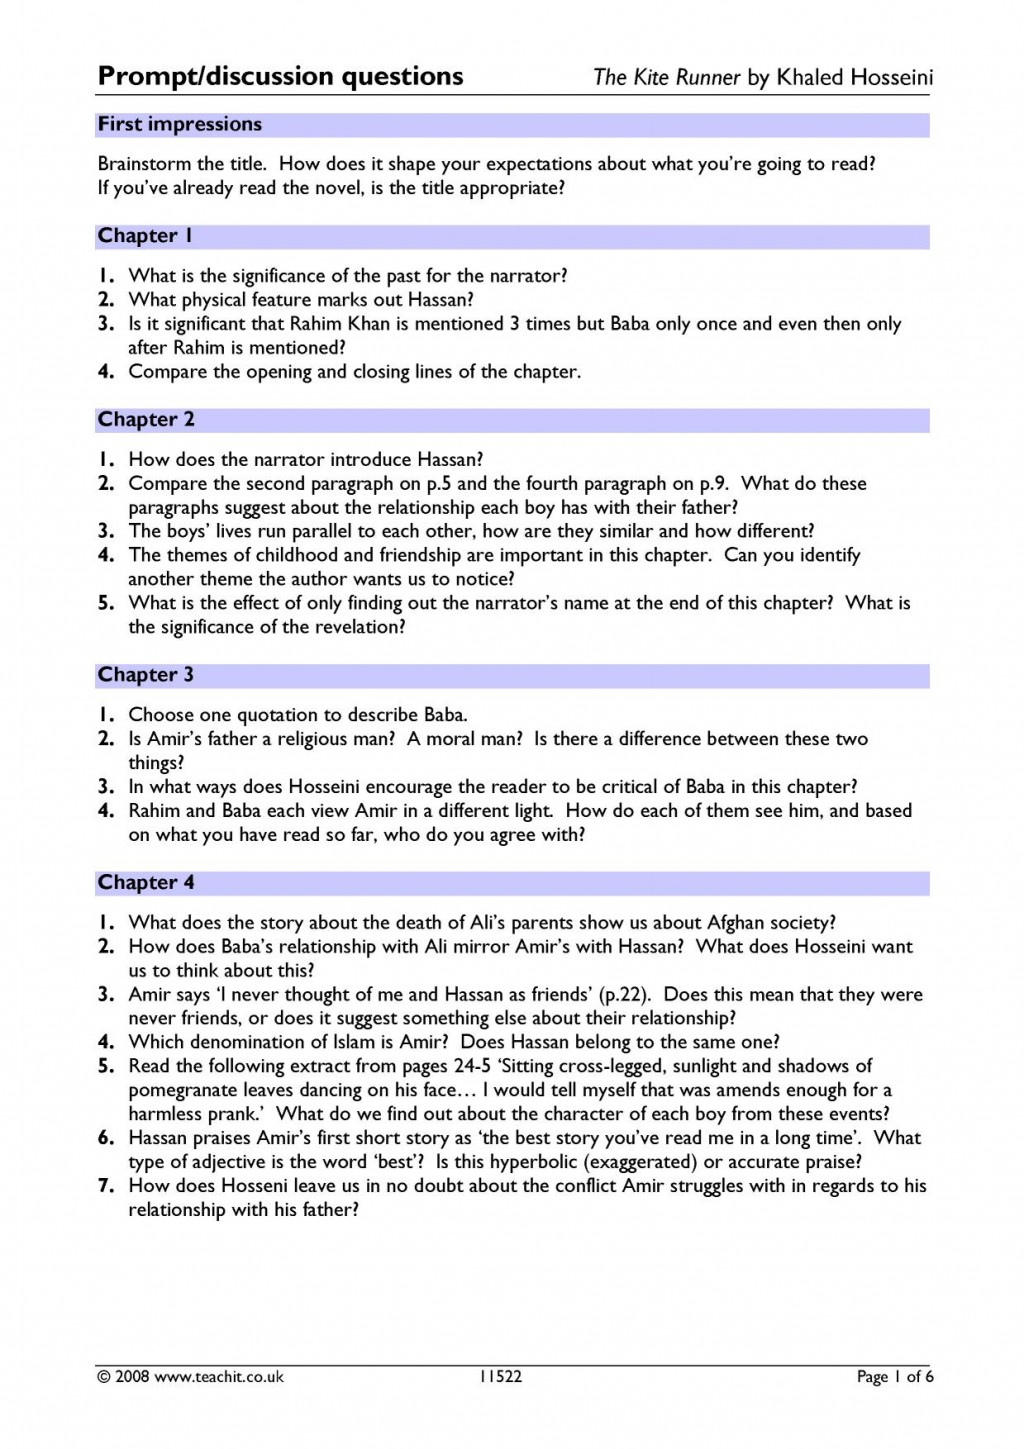 009 Essay Example The Kite Runner Topics For Religion Key Words Writing An Keys To Reflective Synthesis Narrative Persuasive Informative Analytical Argumentative College Unforgettable Discussion Questions And Answers Literary Thesis Statements Book Large